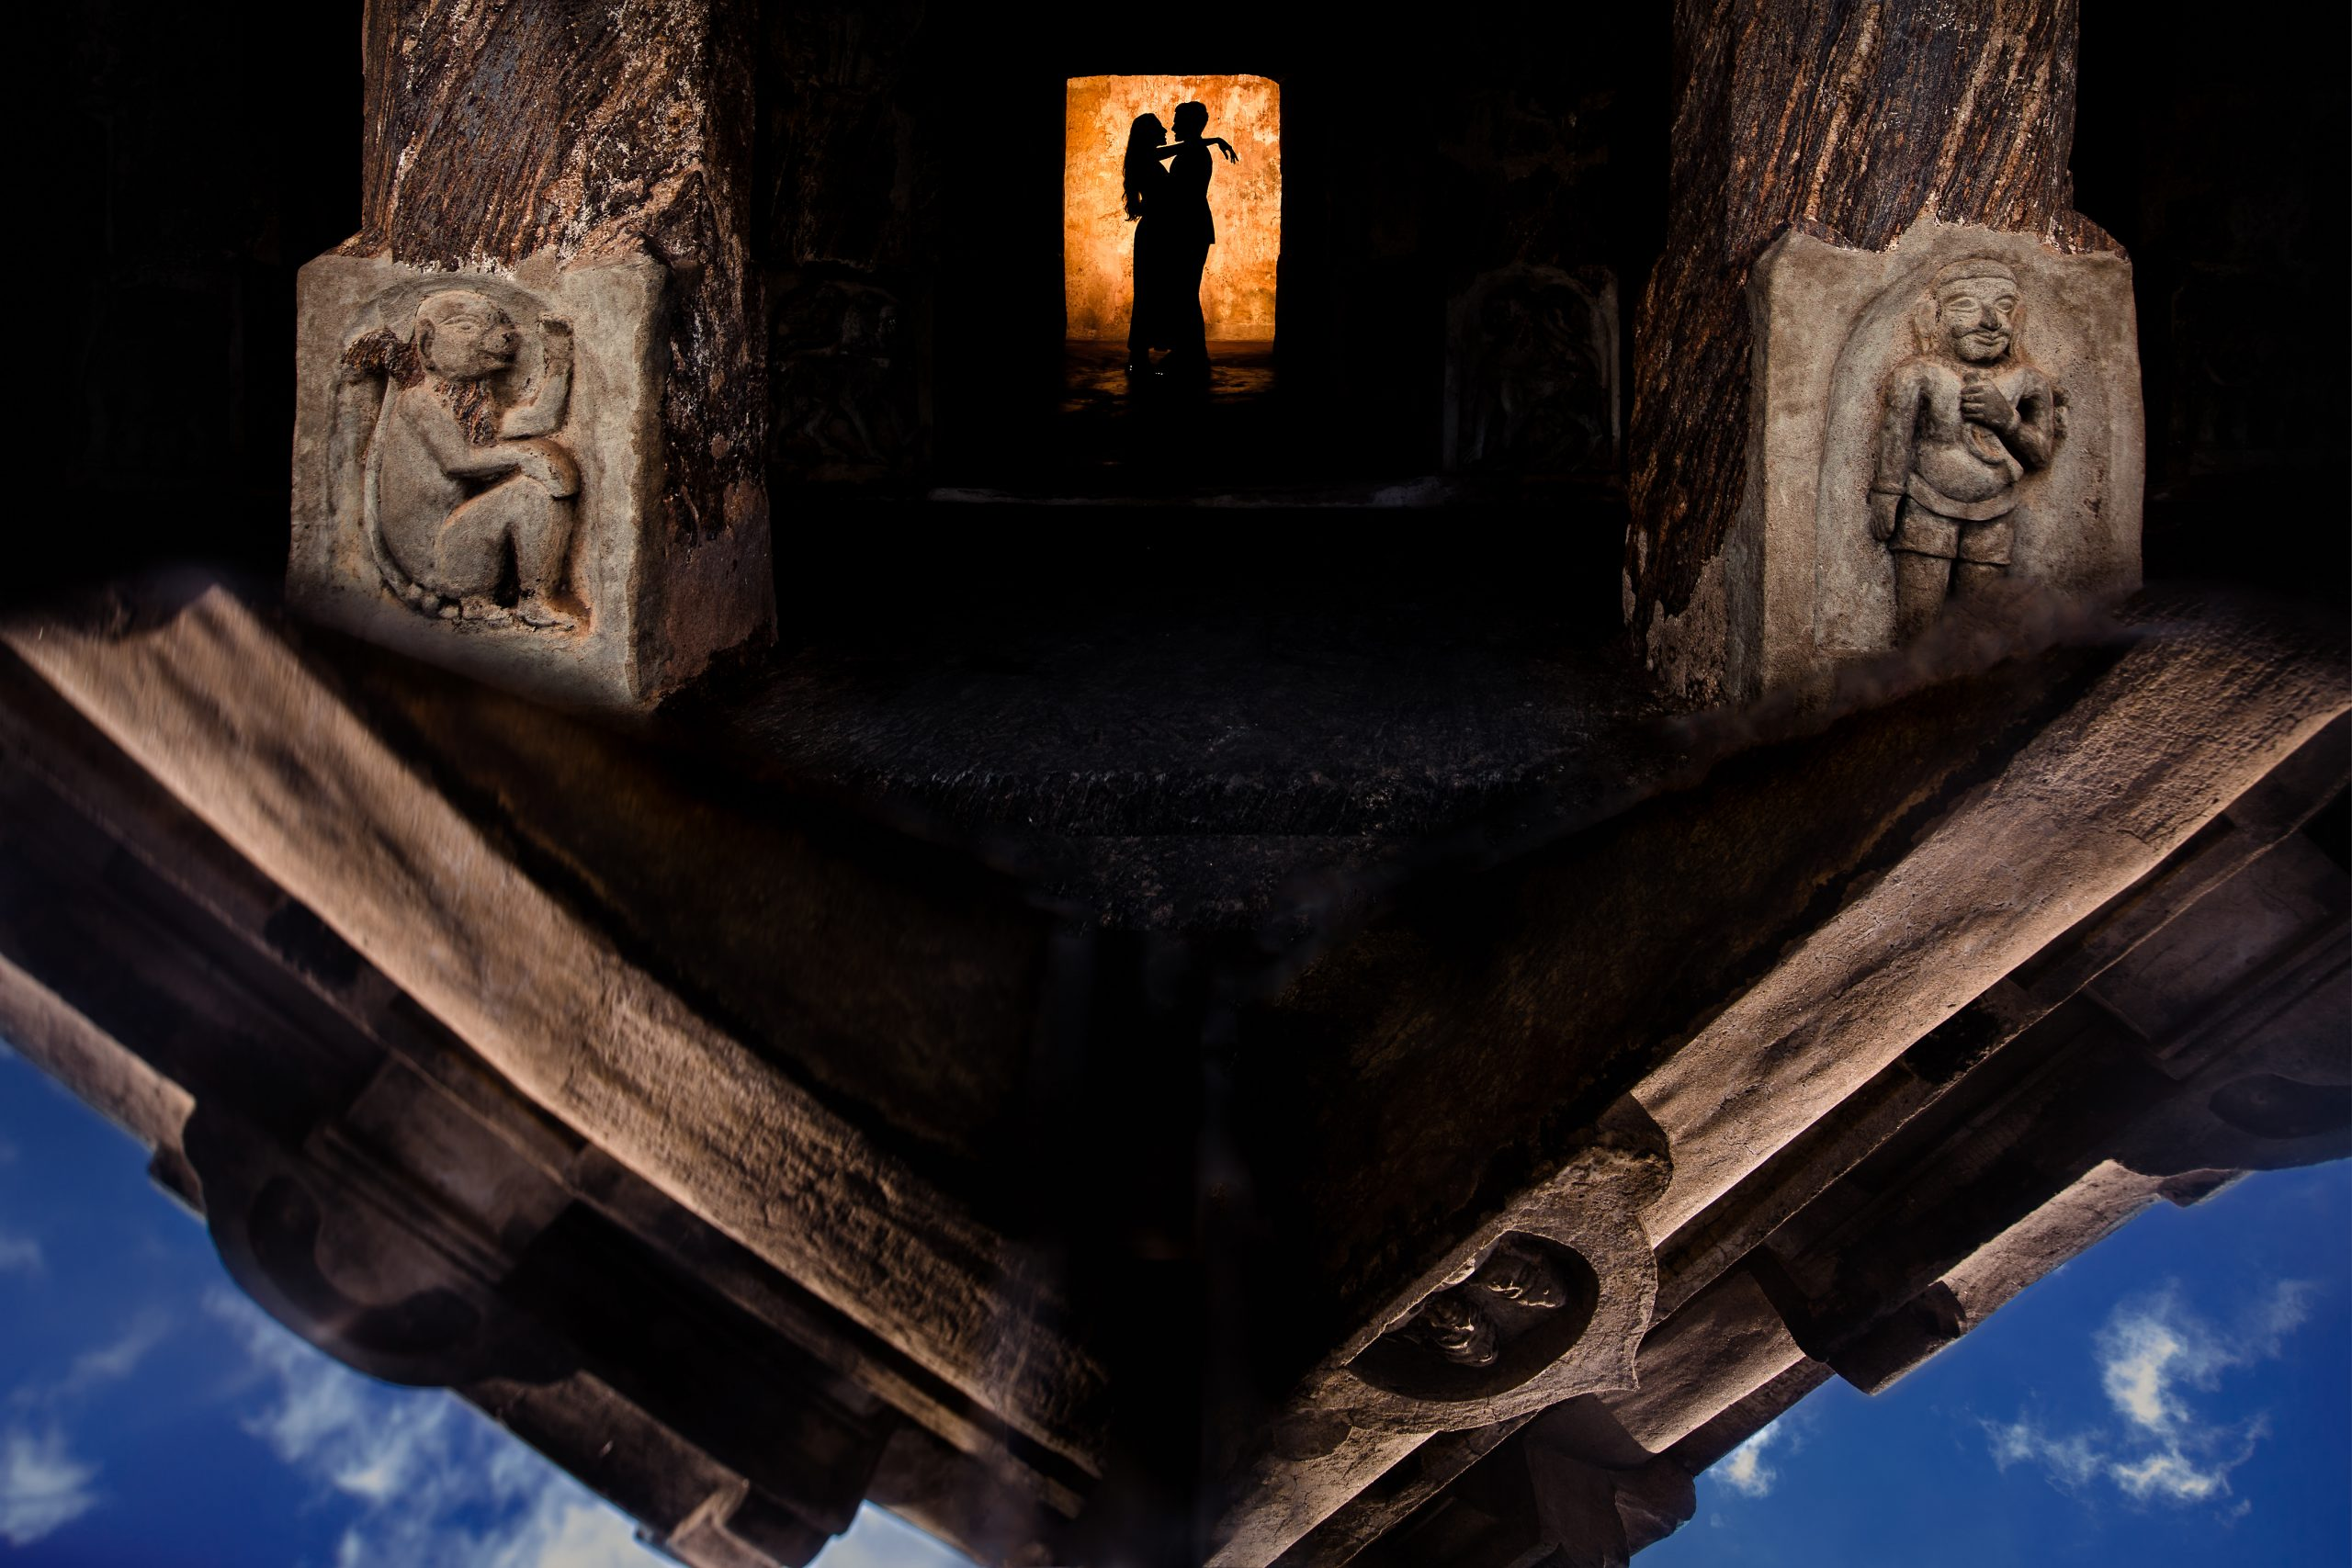 Silhouette of groom and bride embracing in an ancient Indian temple